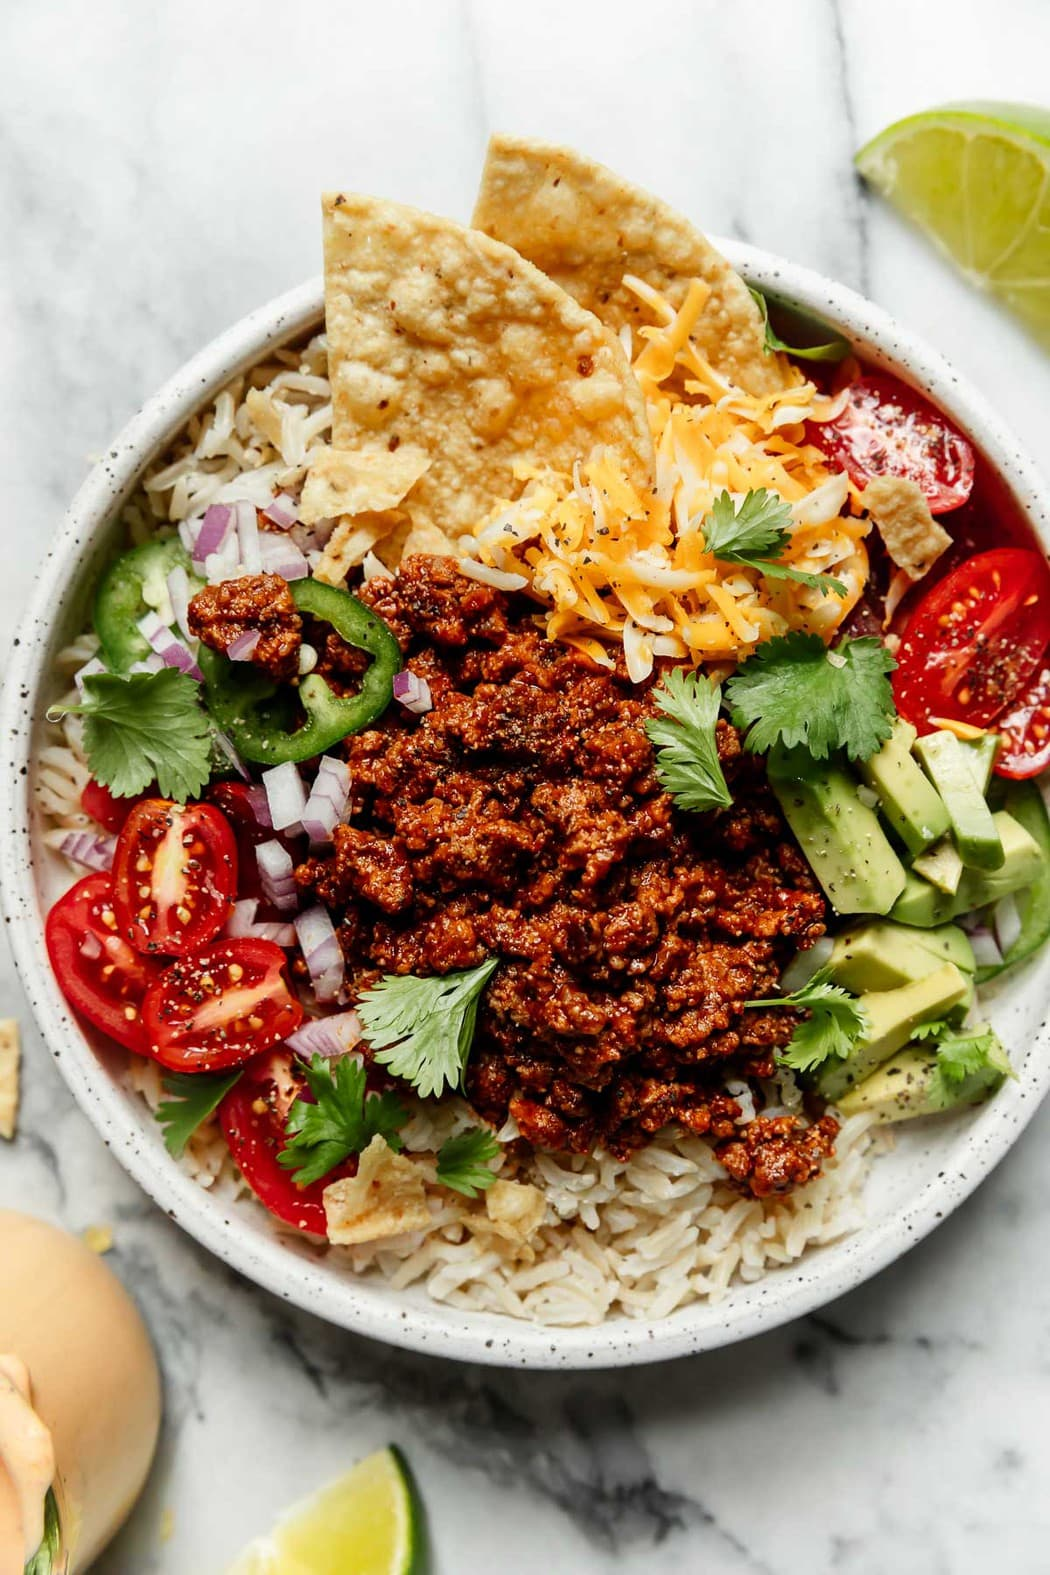 Meals that make great lunches: Weekly Meal Plan Ideas #34 - Easy Beef Taco Bowl with Salsa Ranch from TheRealFoodRDs